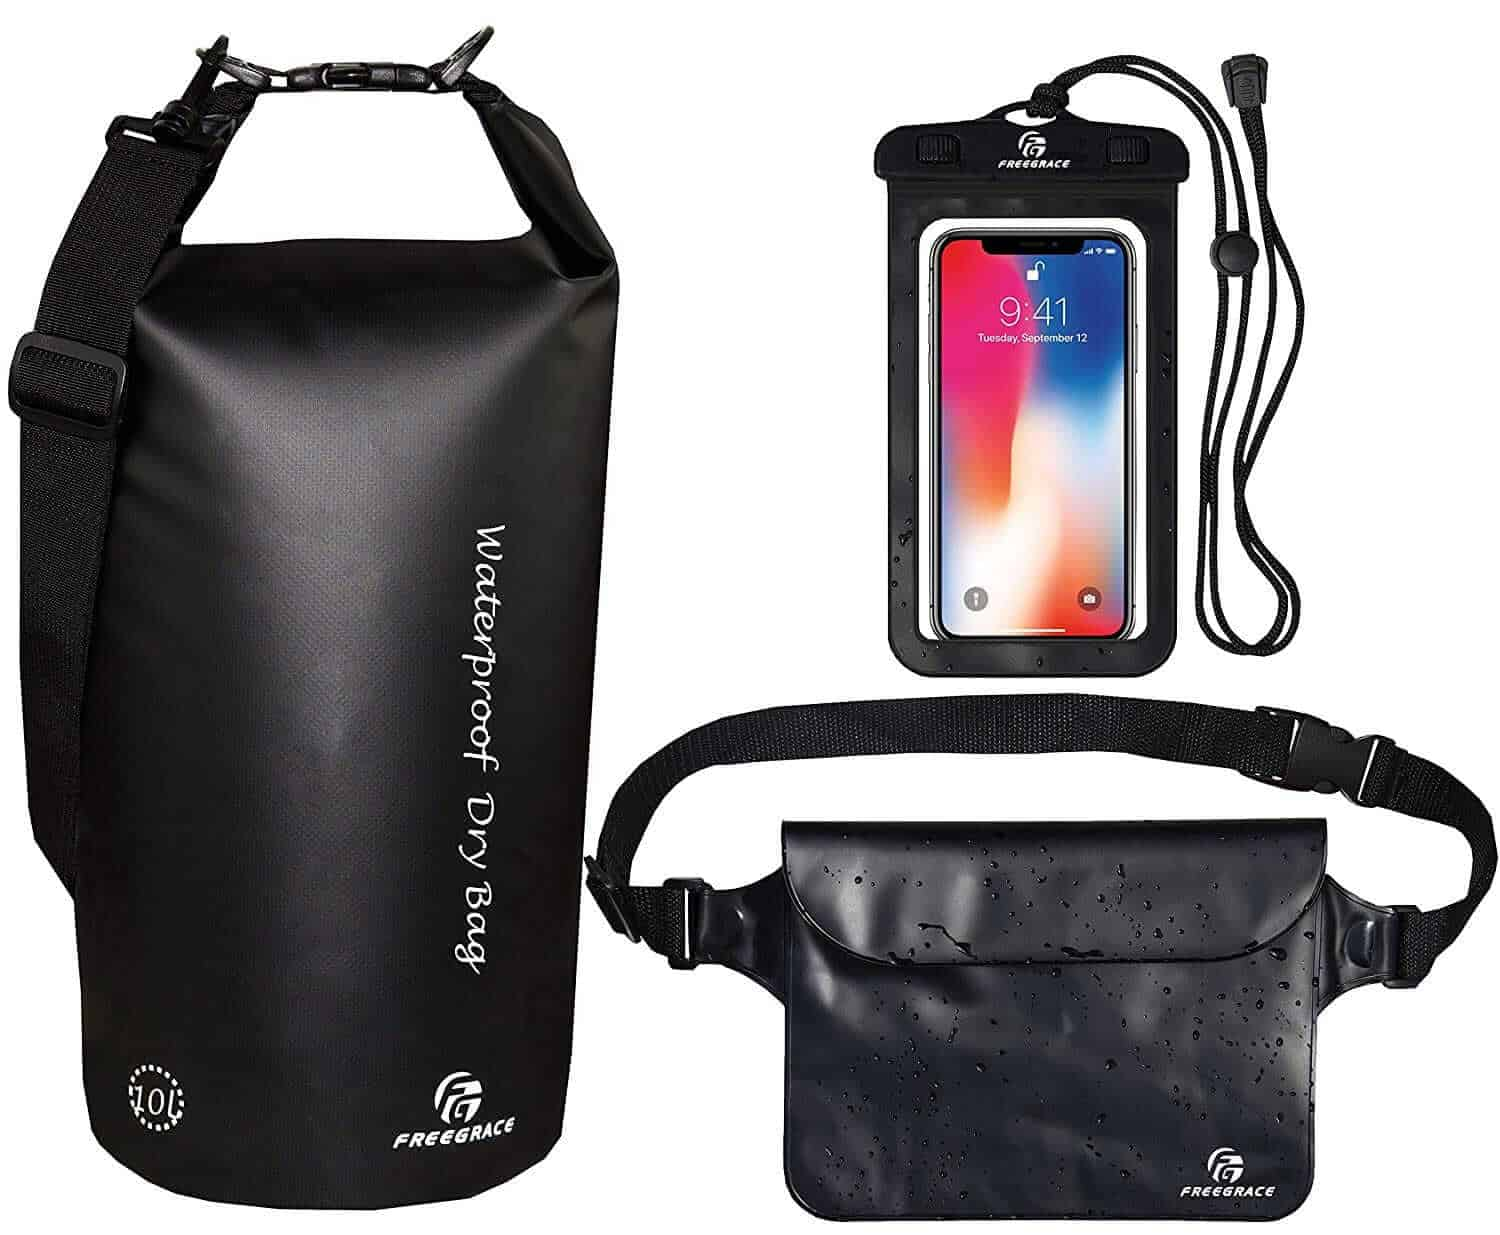 Waterproof dry bag and pouch